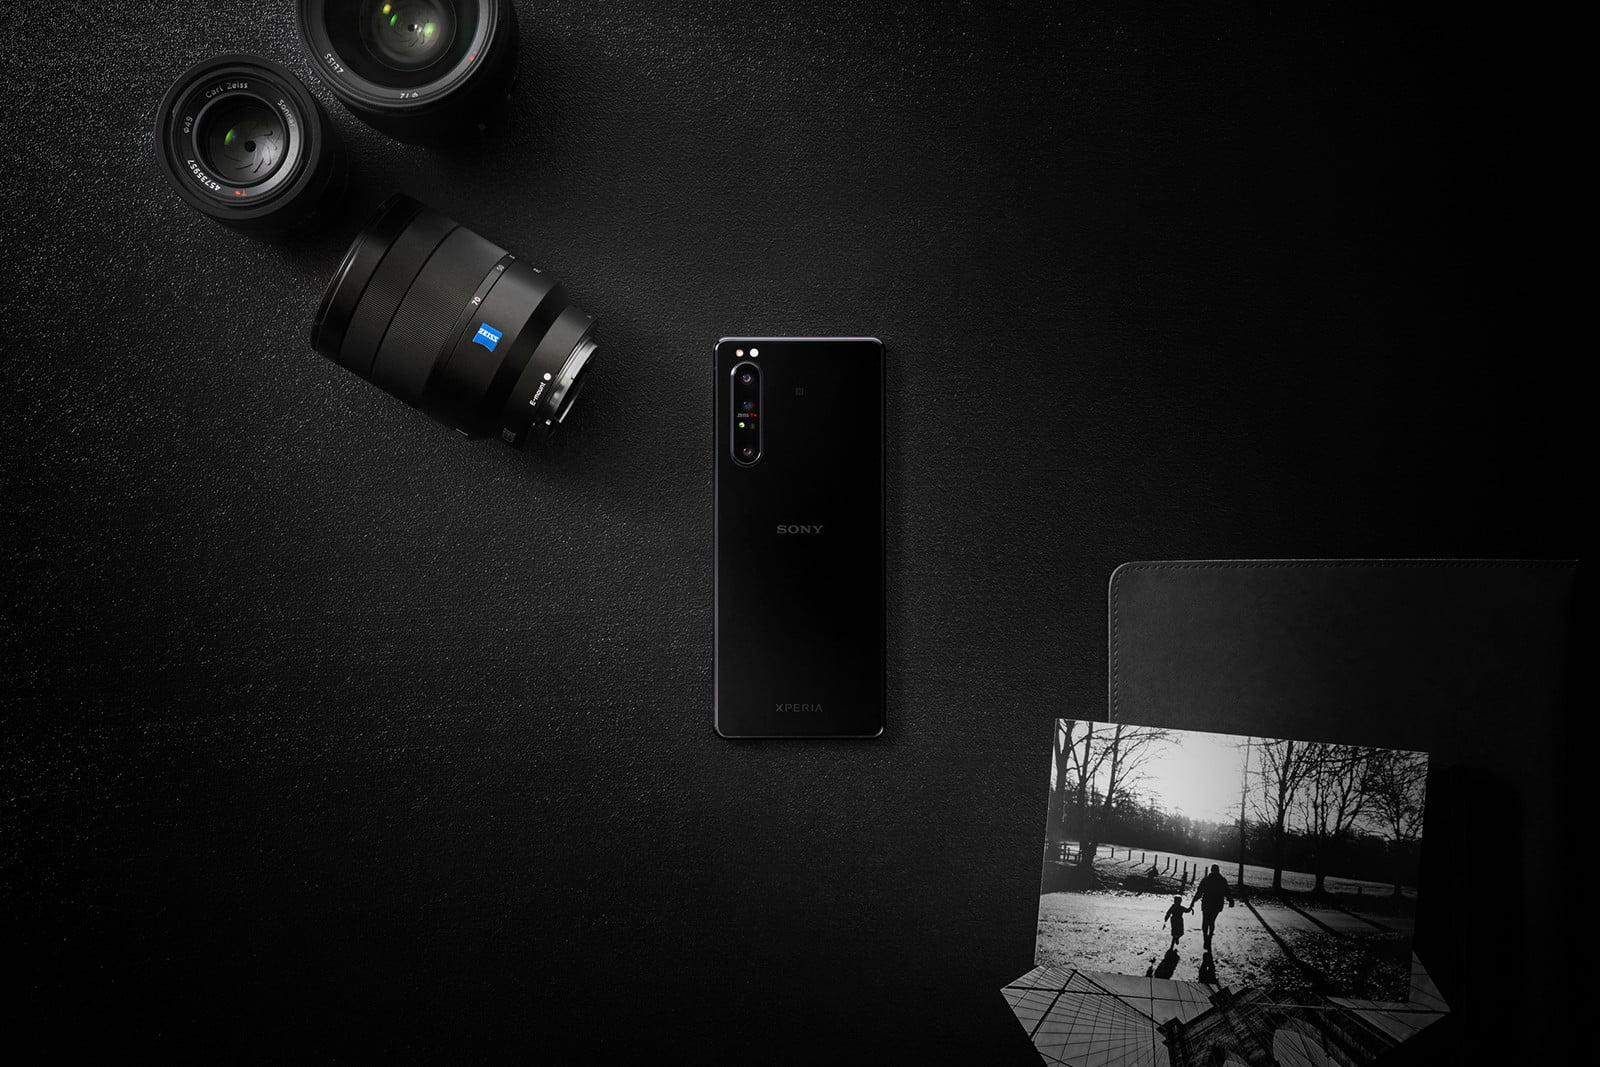 sony xperia 1 ii camera launch date pdx203 insituation black 16 9 photographer large